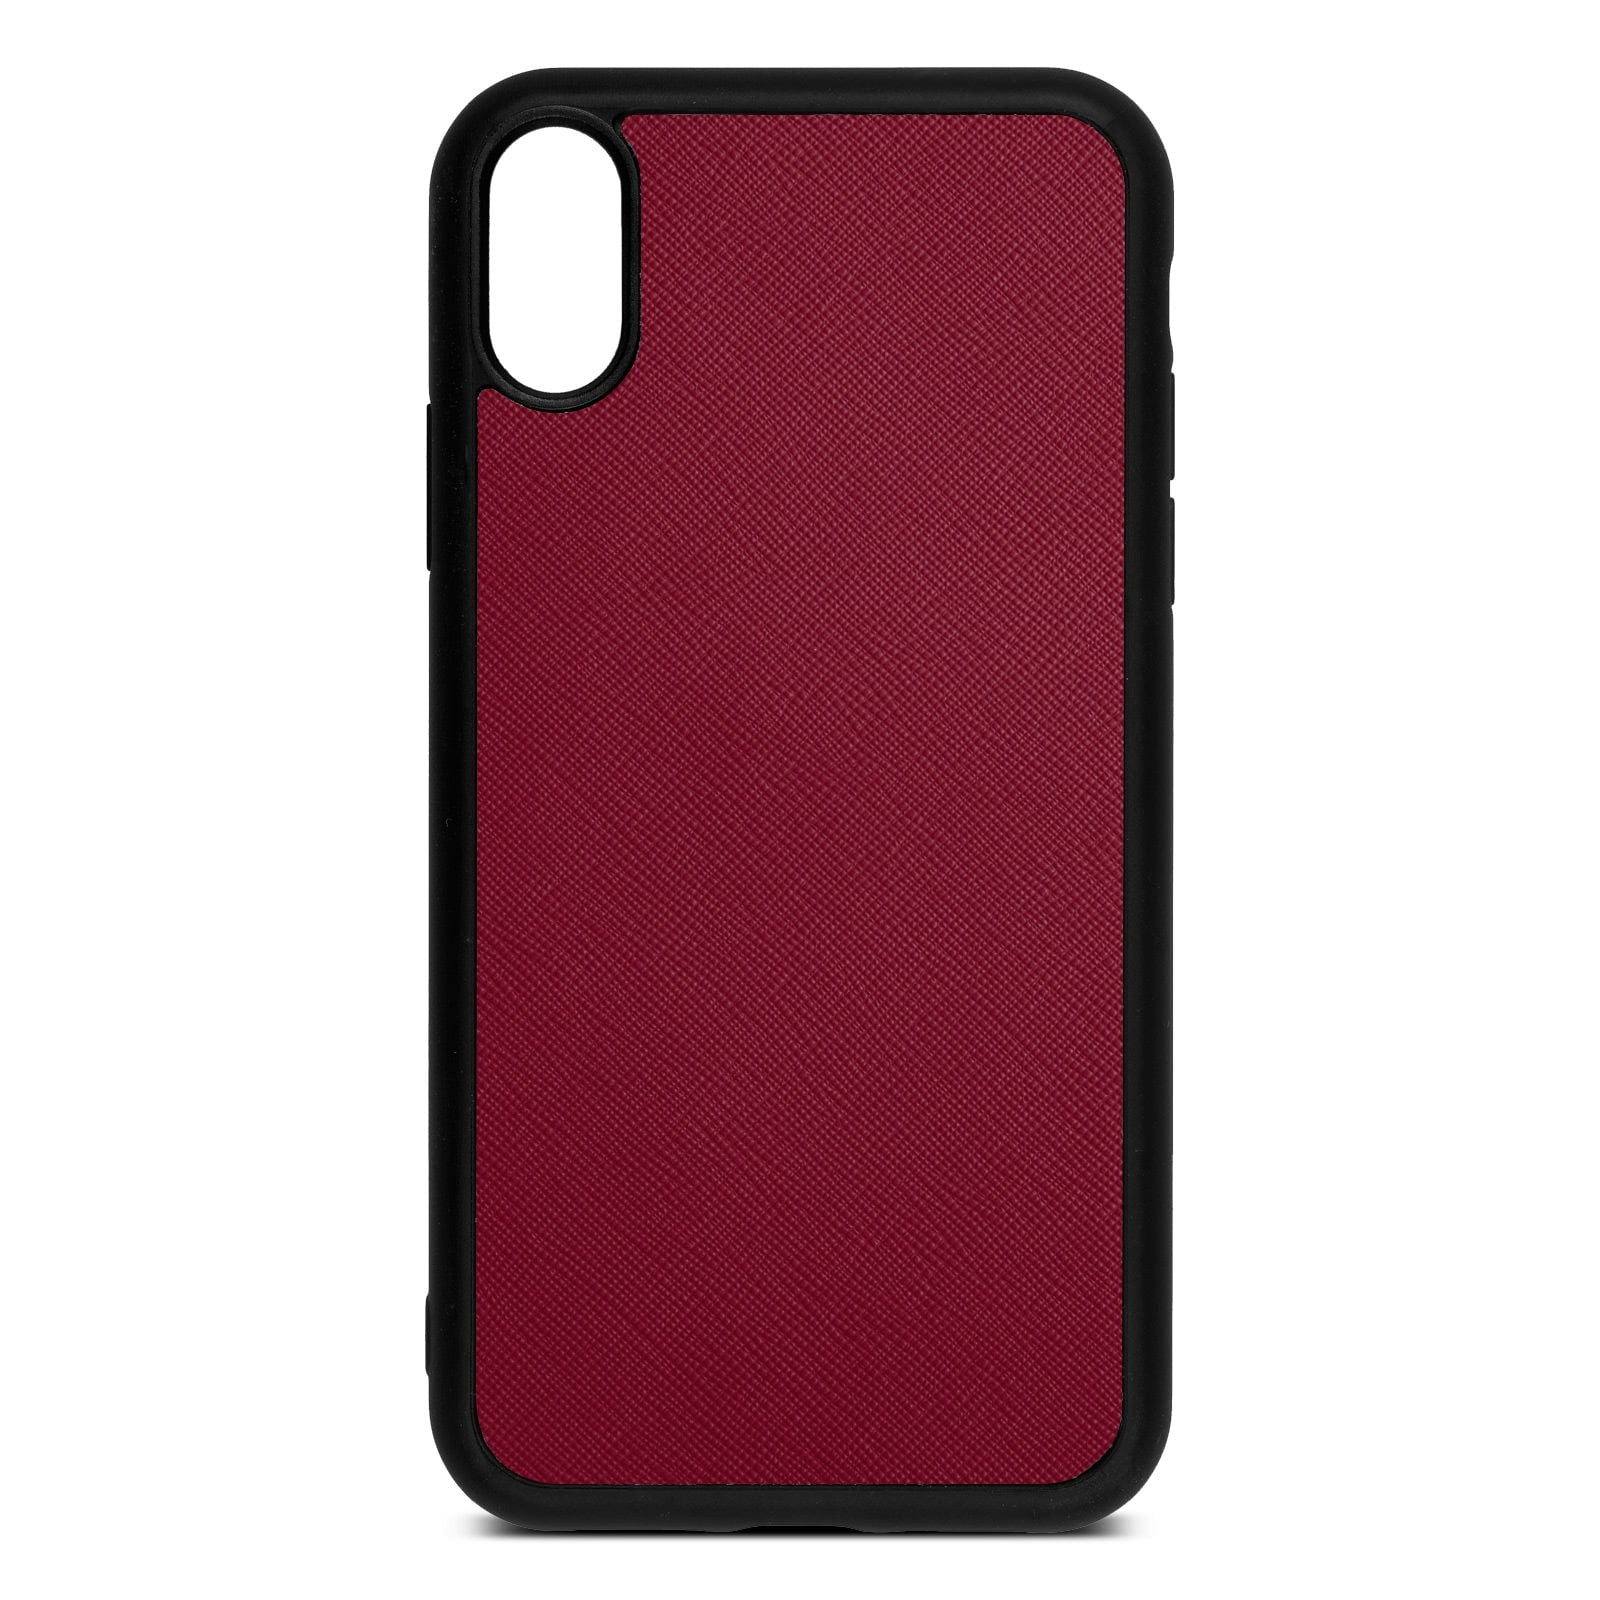 Blank Personalised Dark Red Saffiano Leather iPhone XR Case